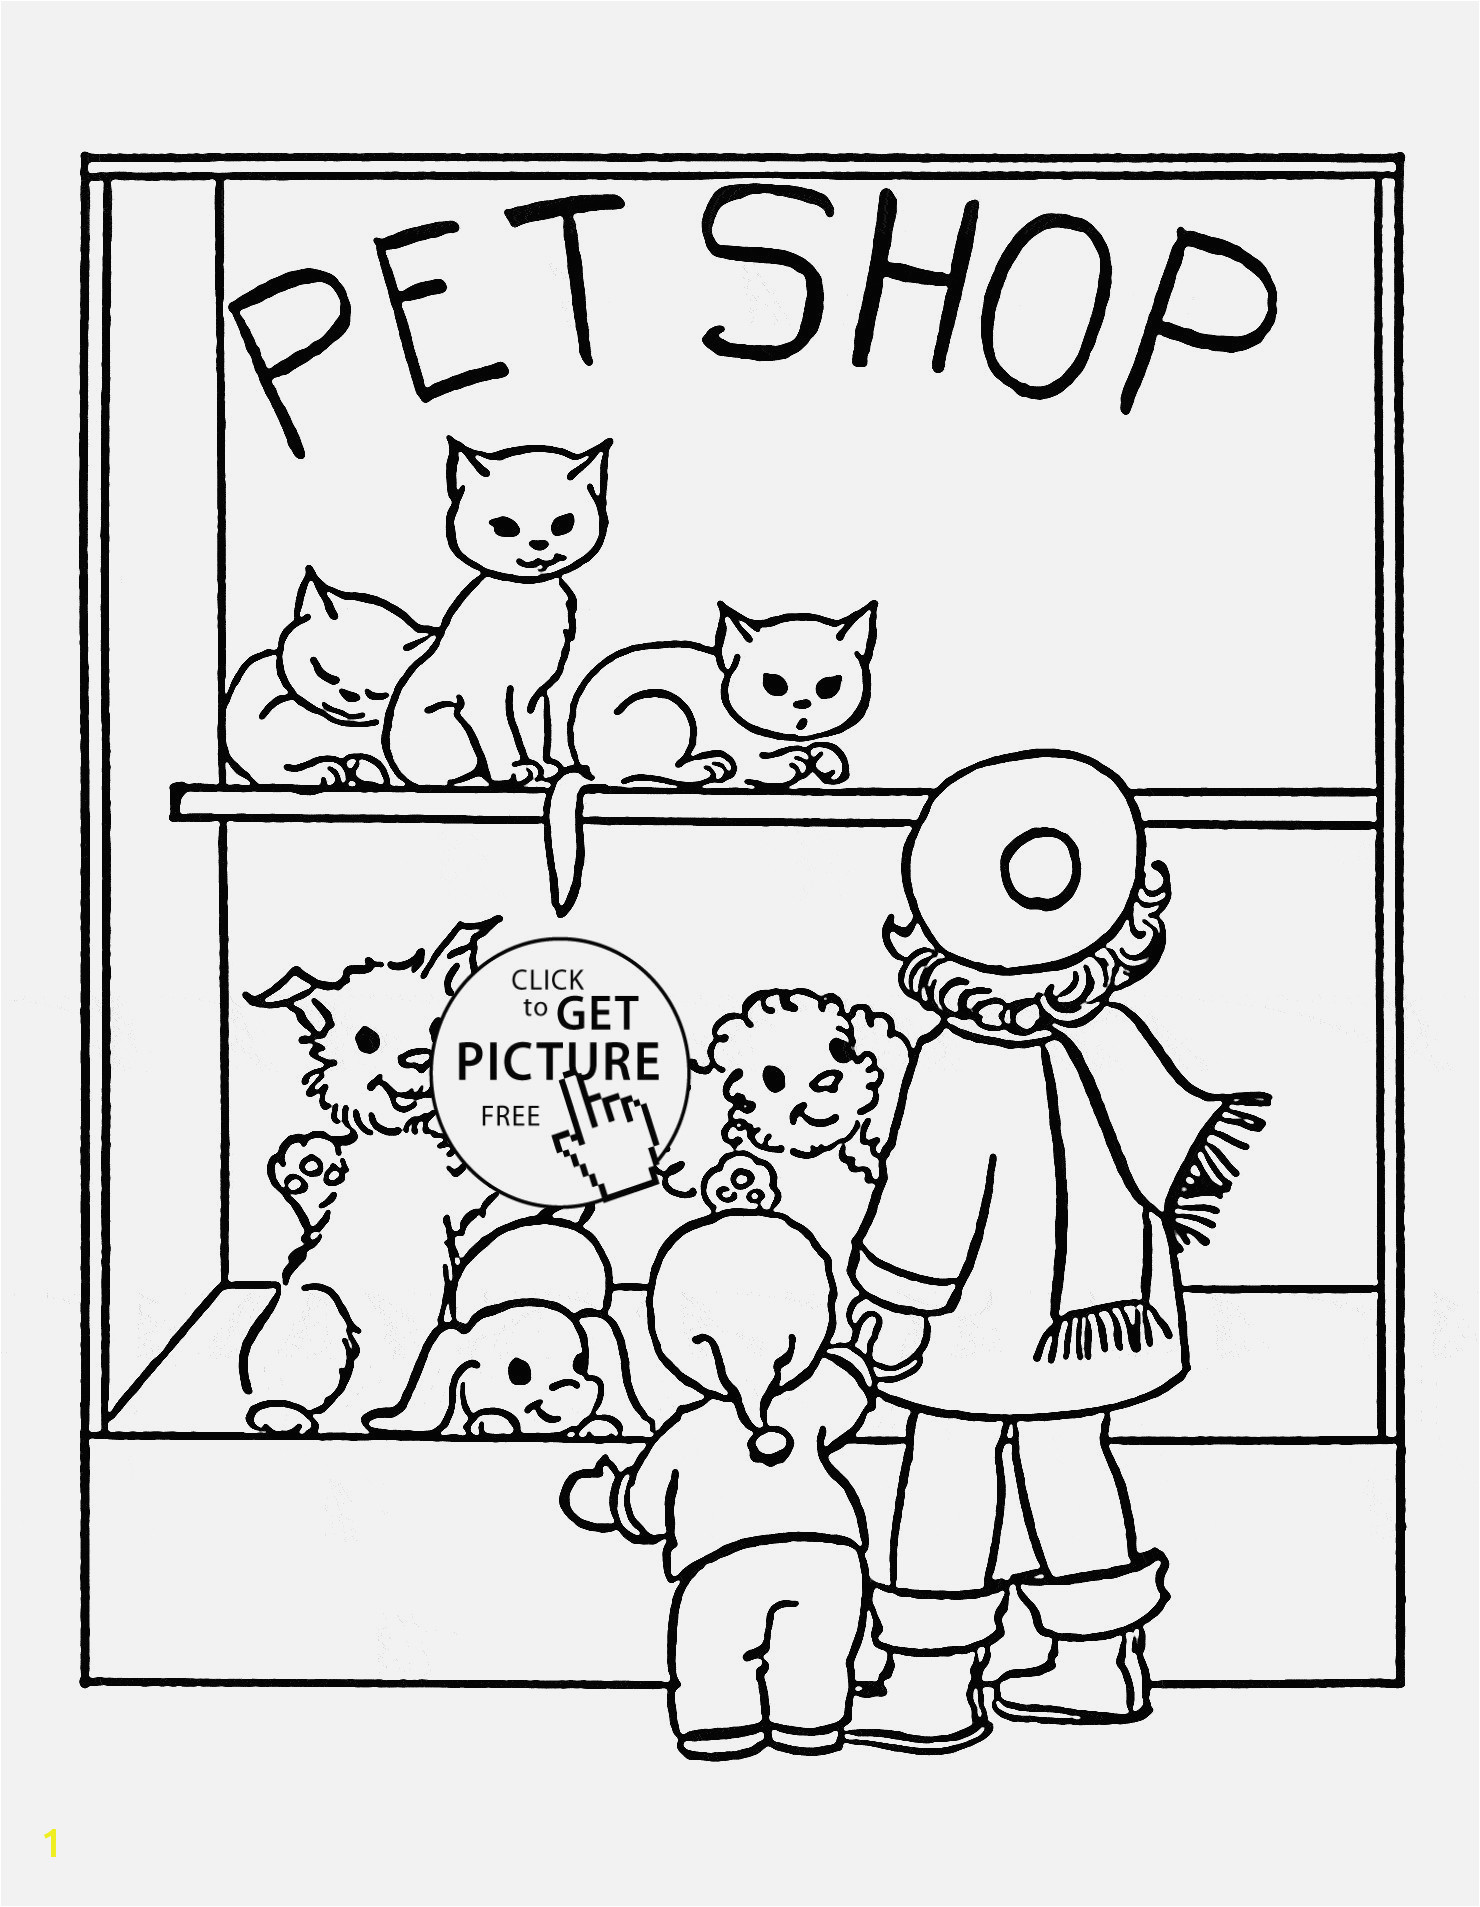 Pretty Coloring Pages Amazing Advantages Cute Dog Coloring Pages Elegant Cute Coloring Pages Fresh to